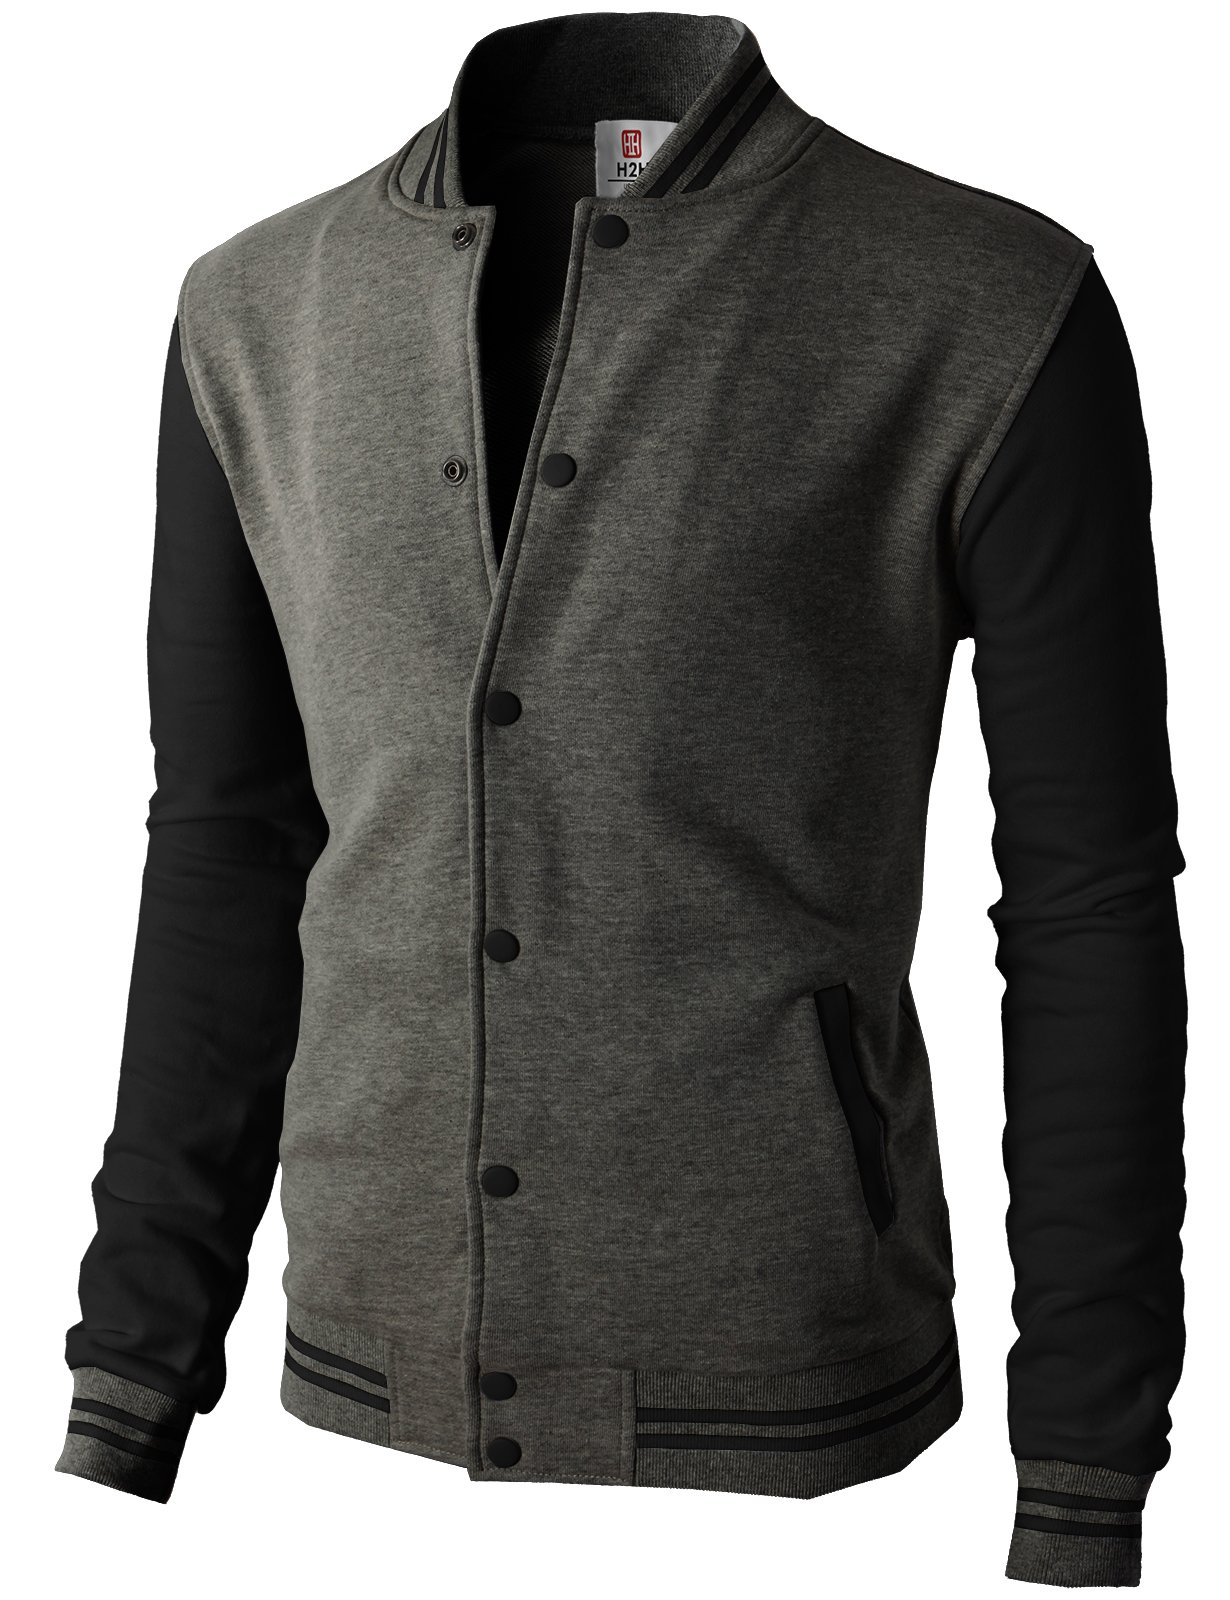 H2H Mens Slim Fit Varsity Baseball Bomber Cotton Lightweight Premium Jacket  Cmoja083-charcoalblack Large by H2H